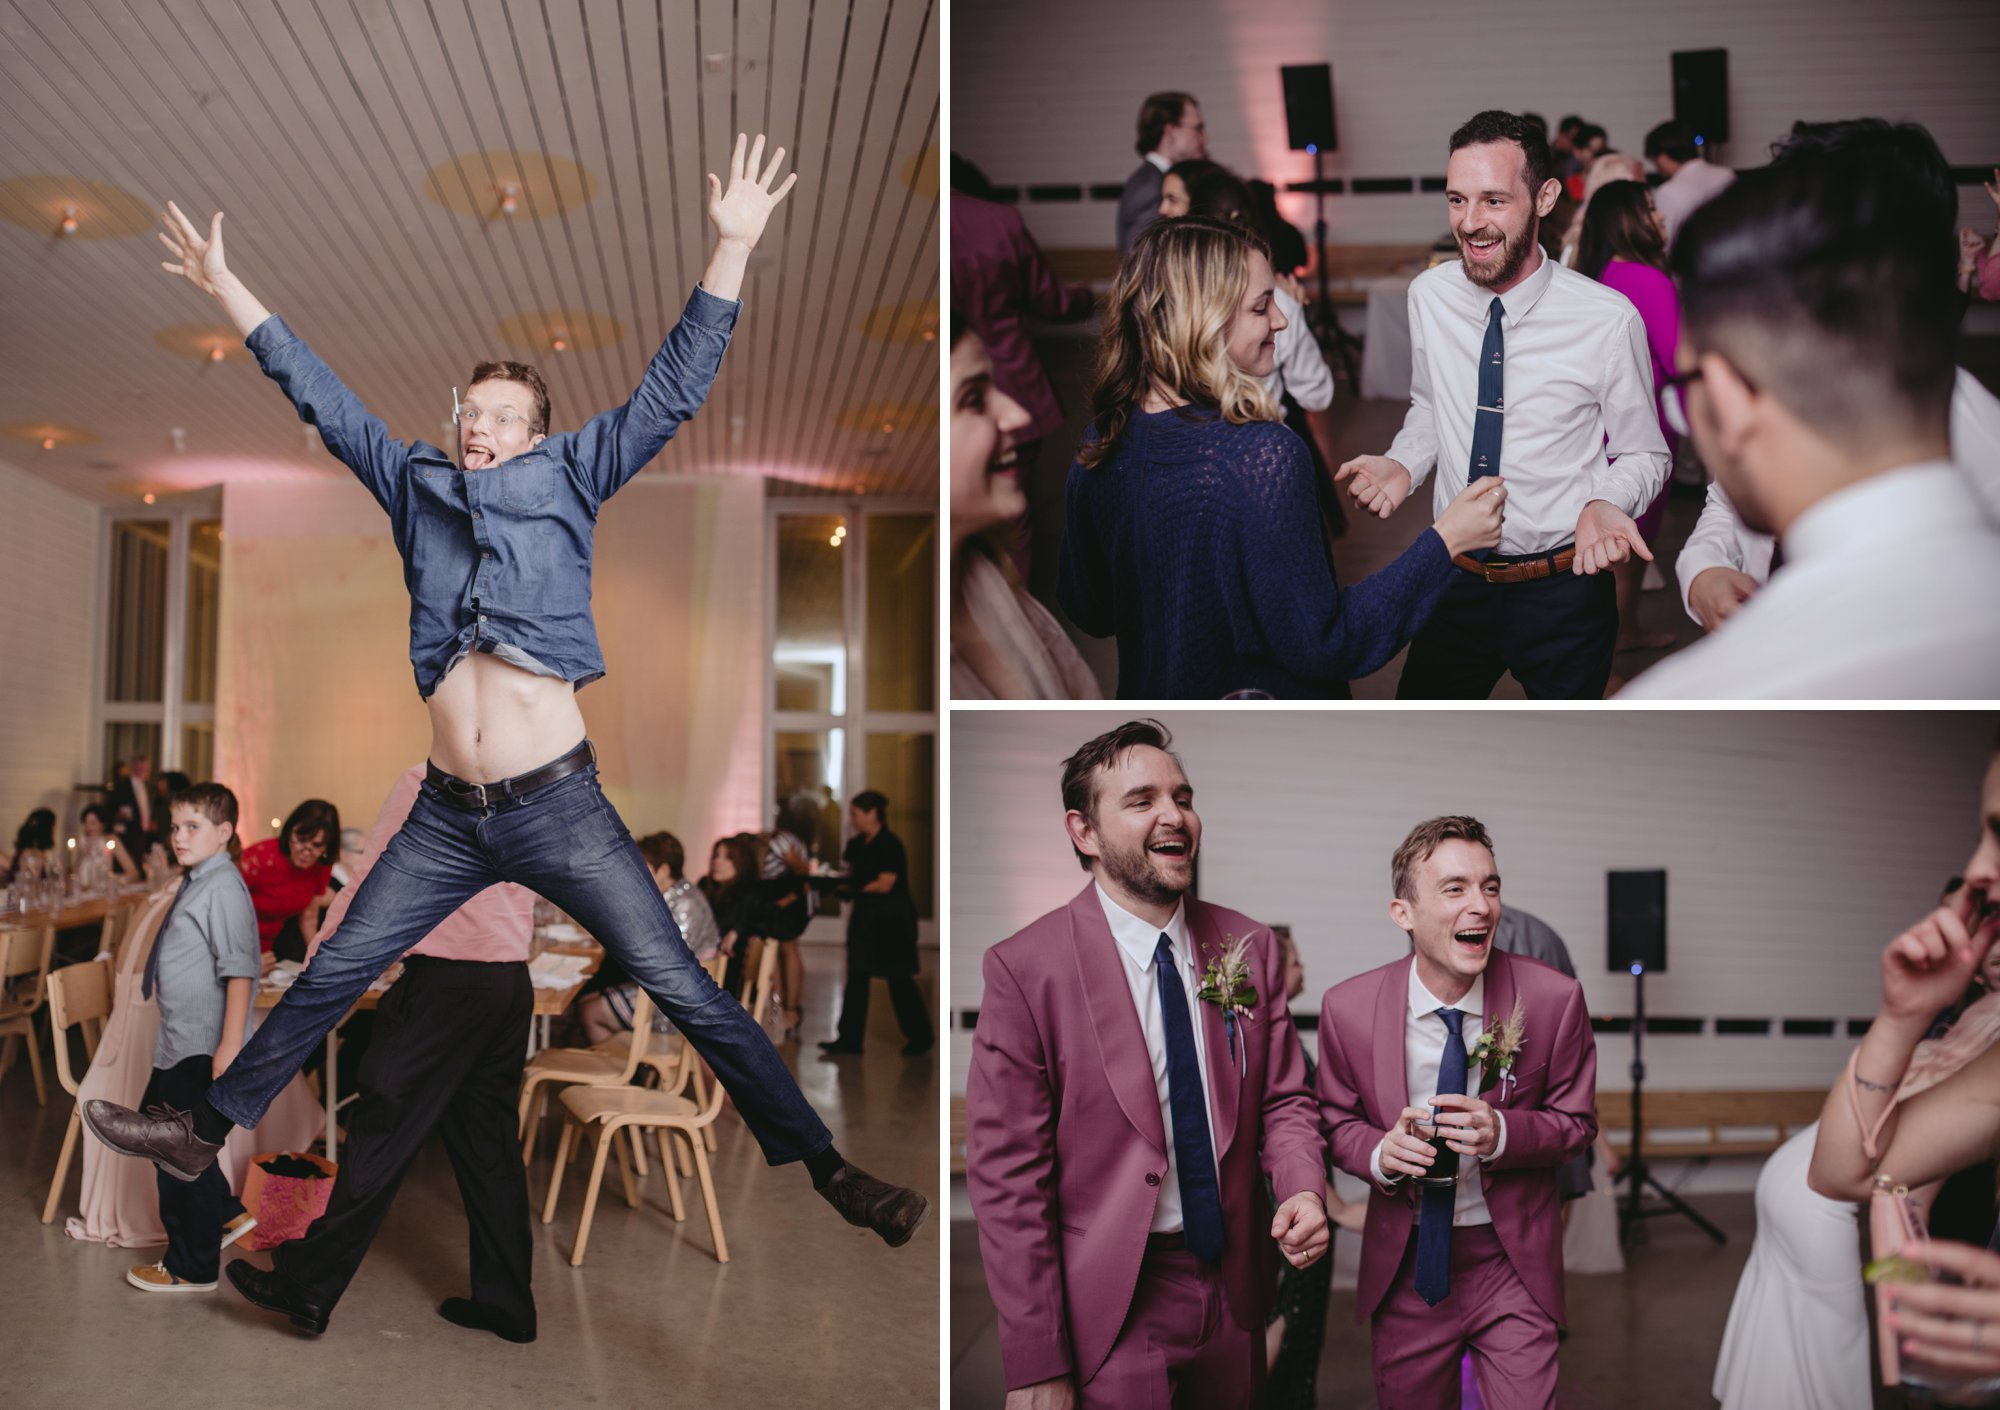 Bride with pink hair and groom in a purple suit prospect house wedding in austin tx with pastel decor and wild florals party dancing reception